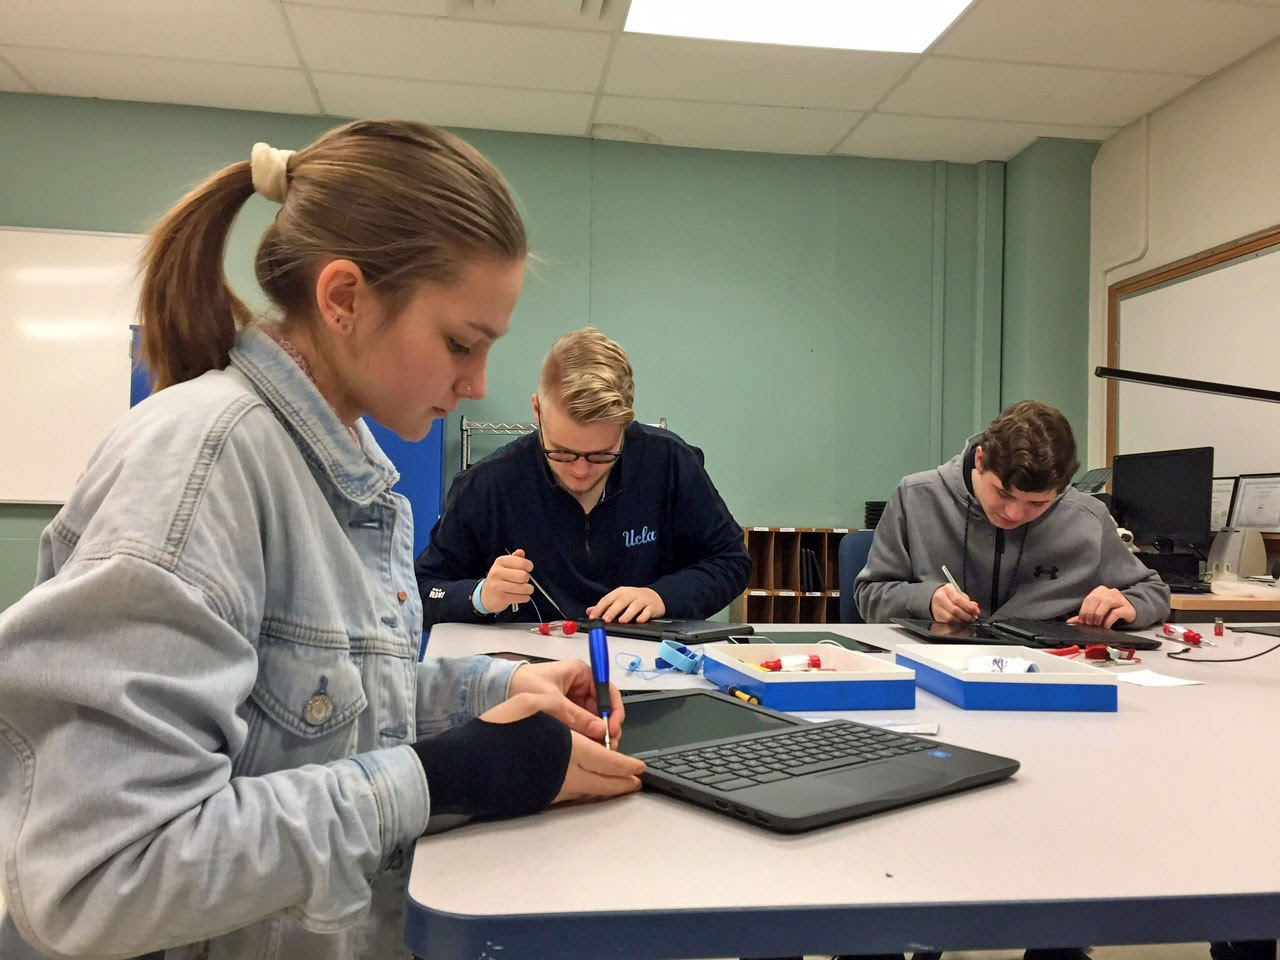 Olivia Foust, Artturi DeBlieck, and Logan Gray work on Chromebooks